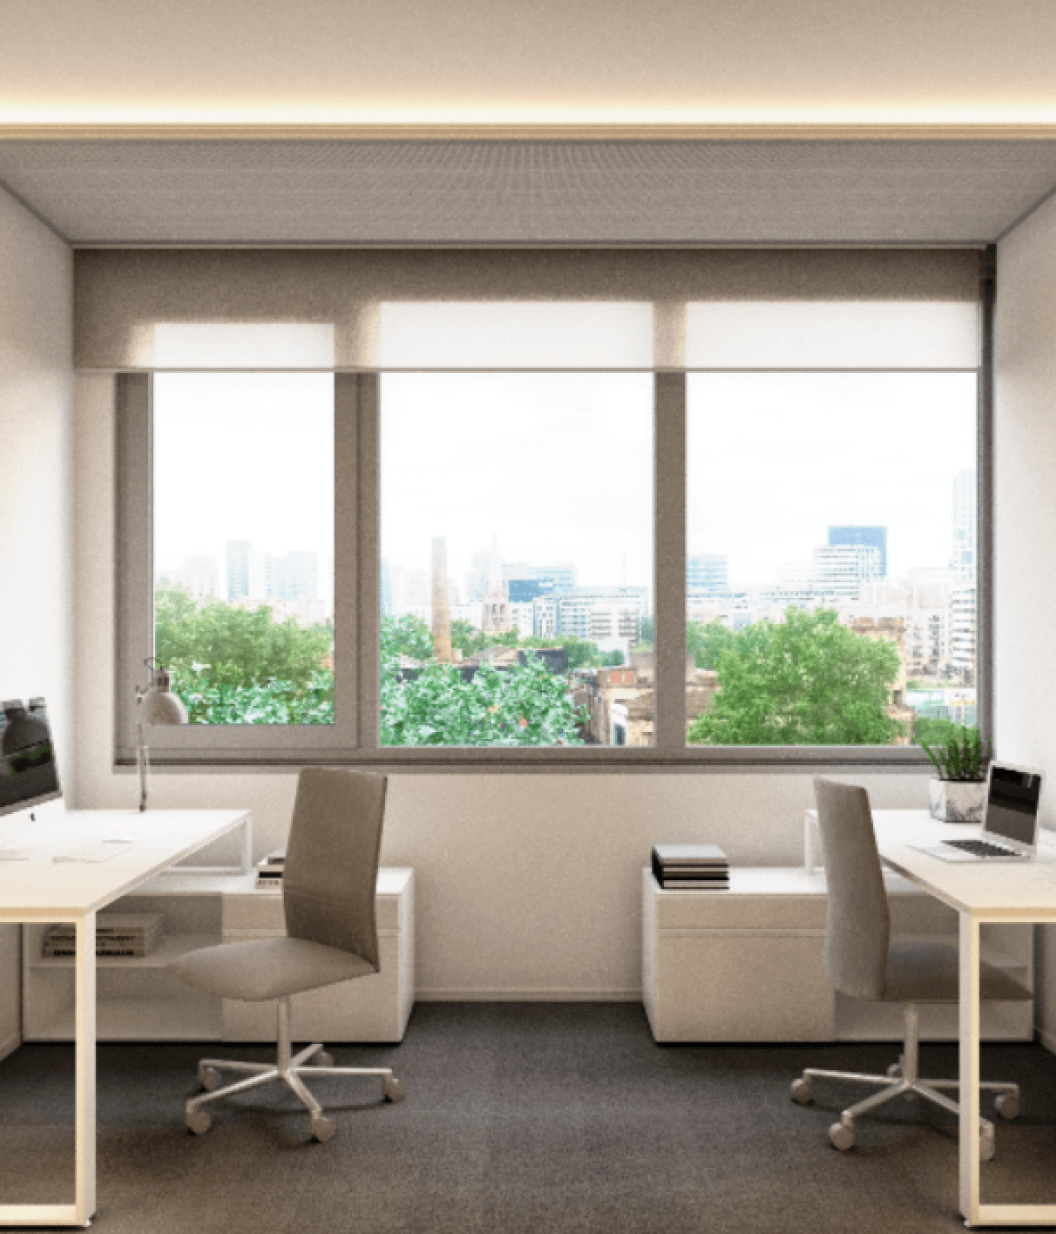 Offices Type Image